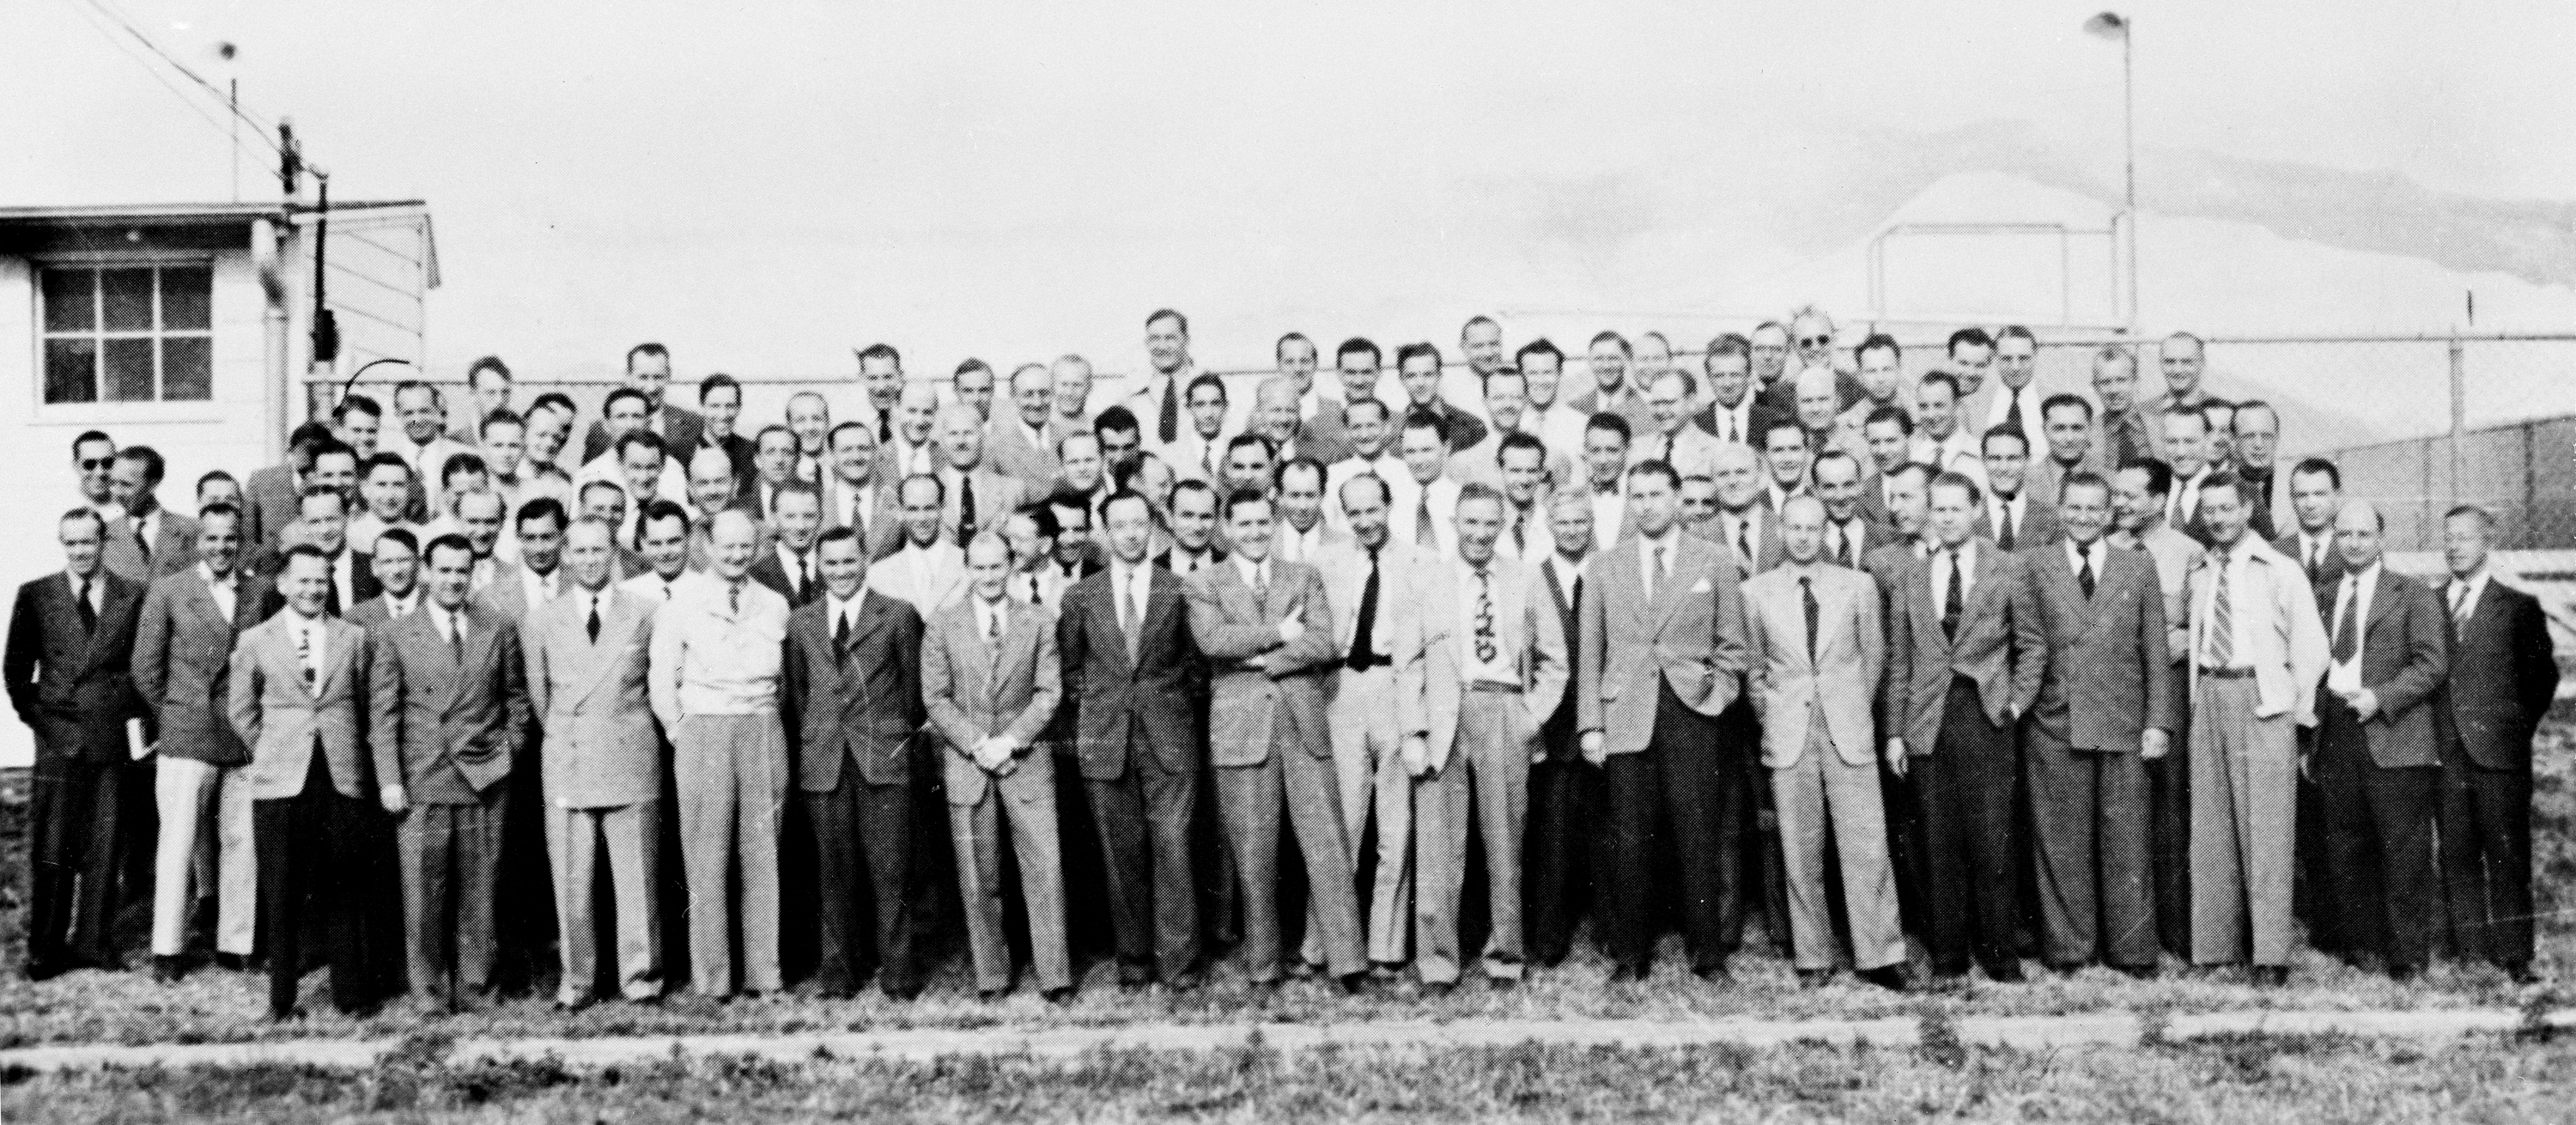 104 German rocket scientists in 1946, including Wernher von Braun